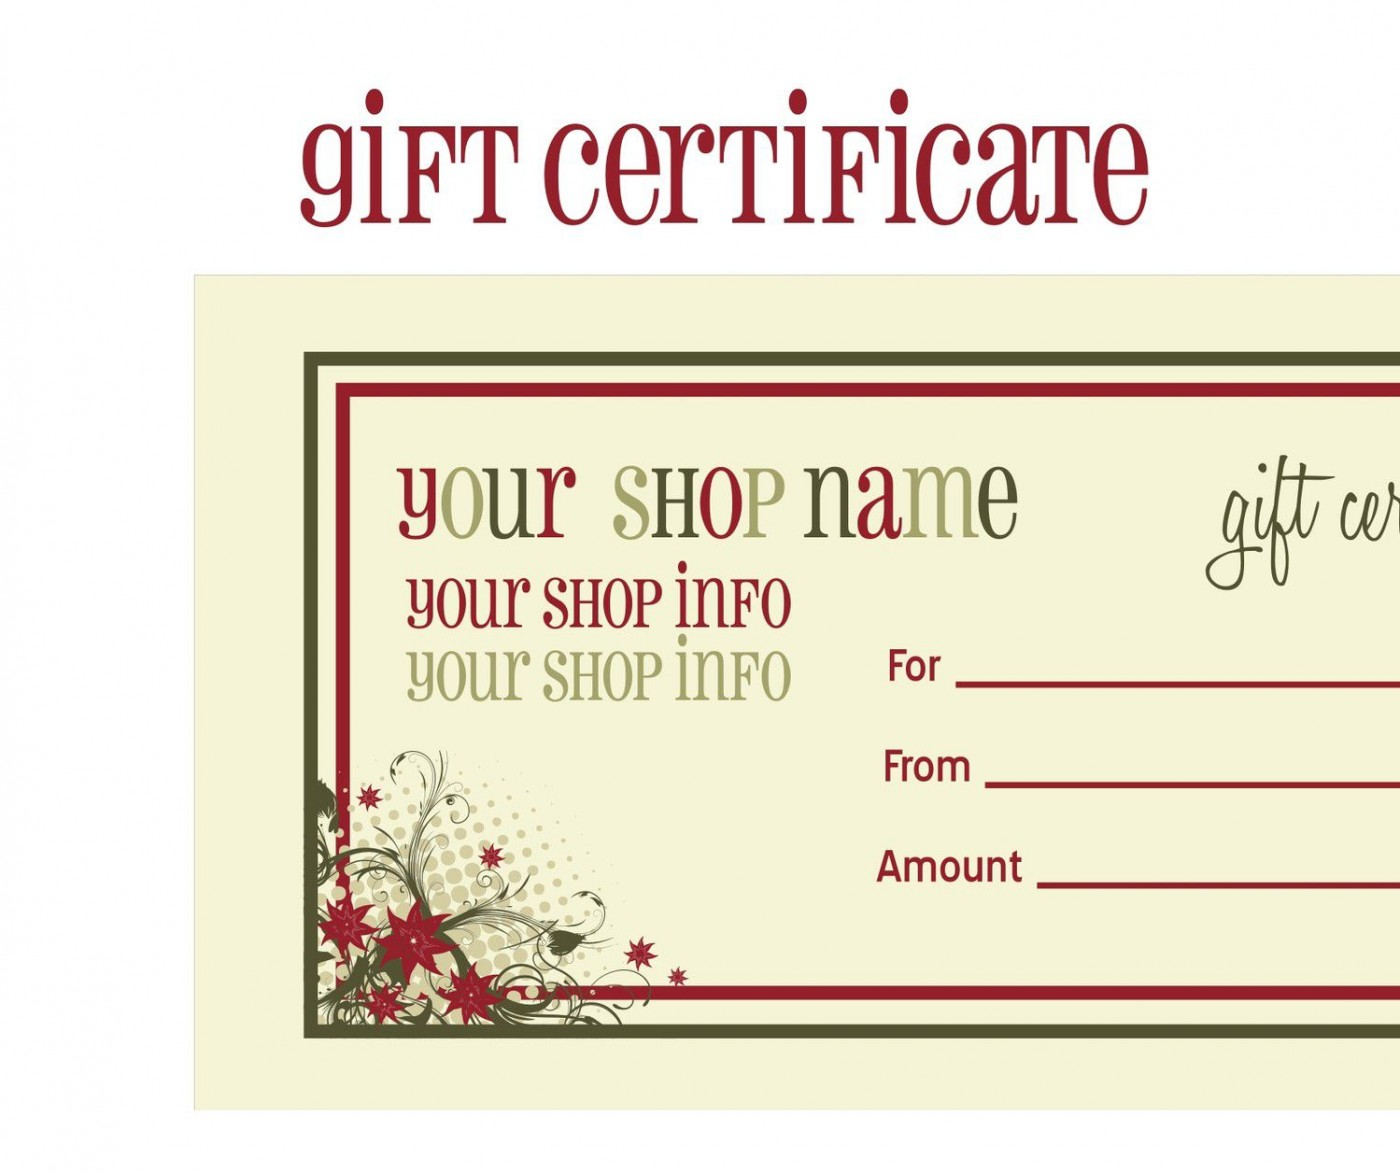 009 Wondrou Template For Christma Gift Certificate Free Image  Voucher Uk Editable Download Microsoft Word1400